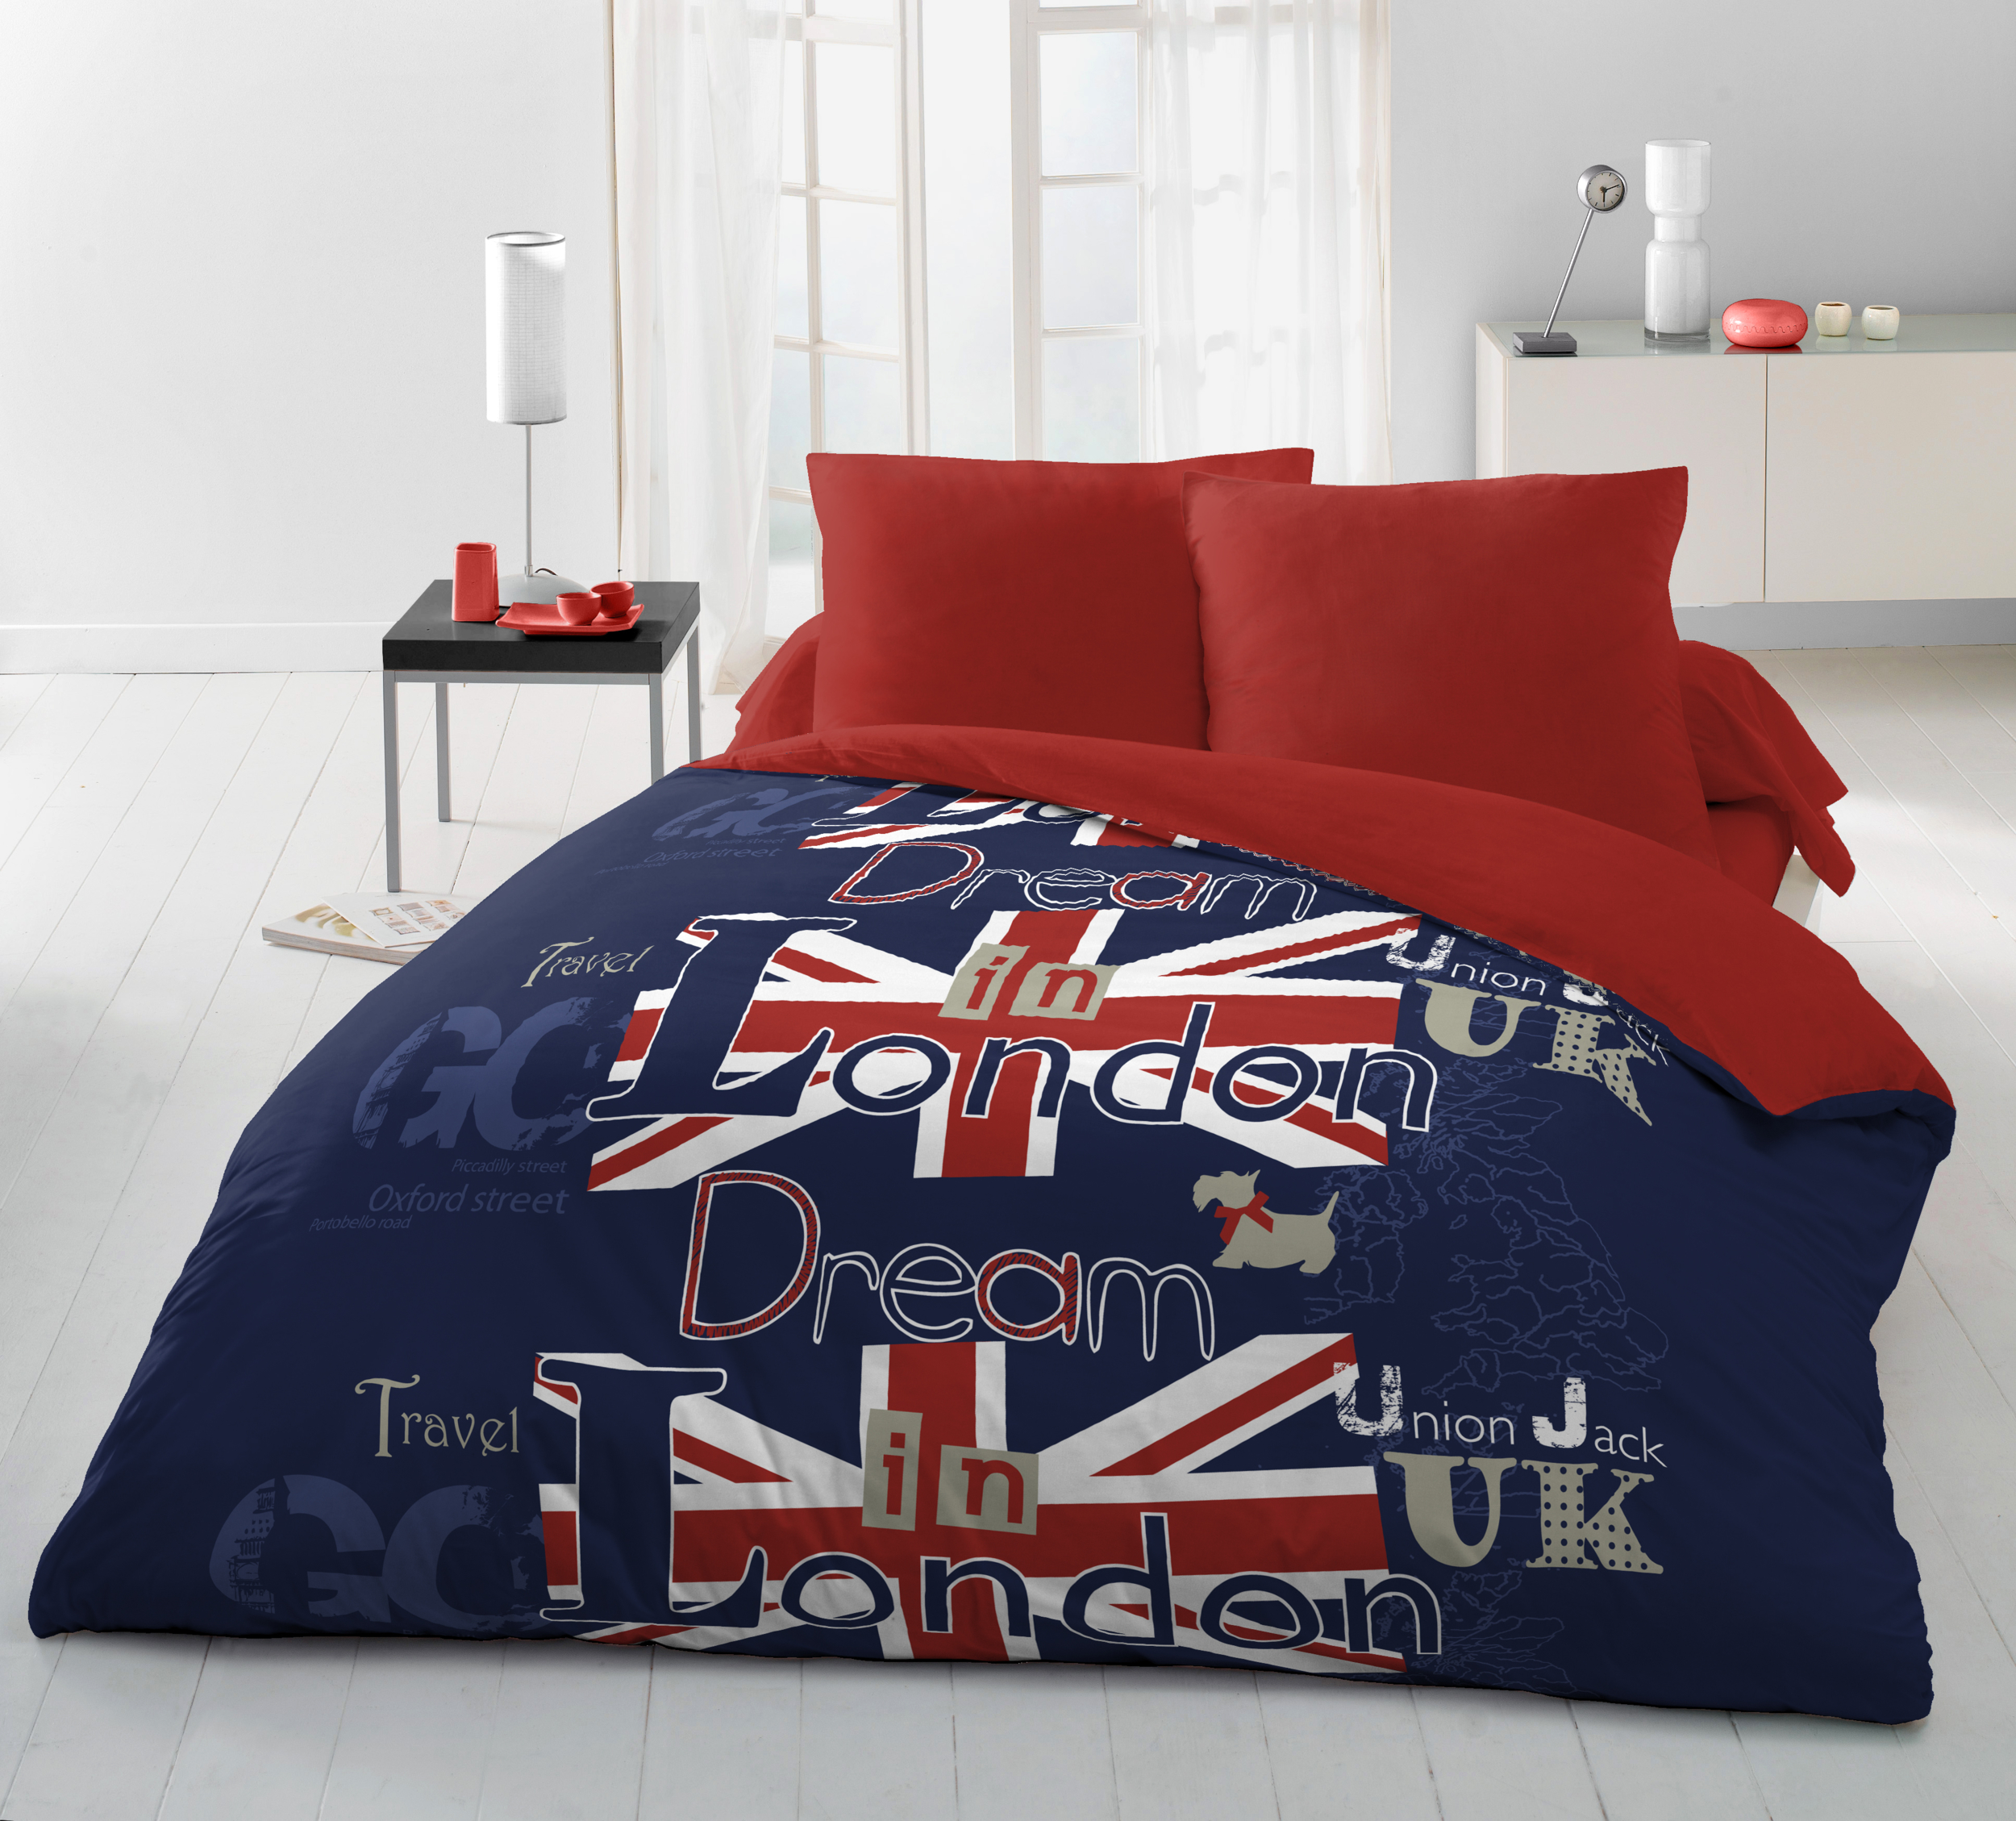 Parure de drap microfibre 4pcs 220x290 dream in london